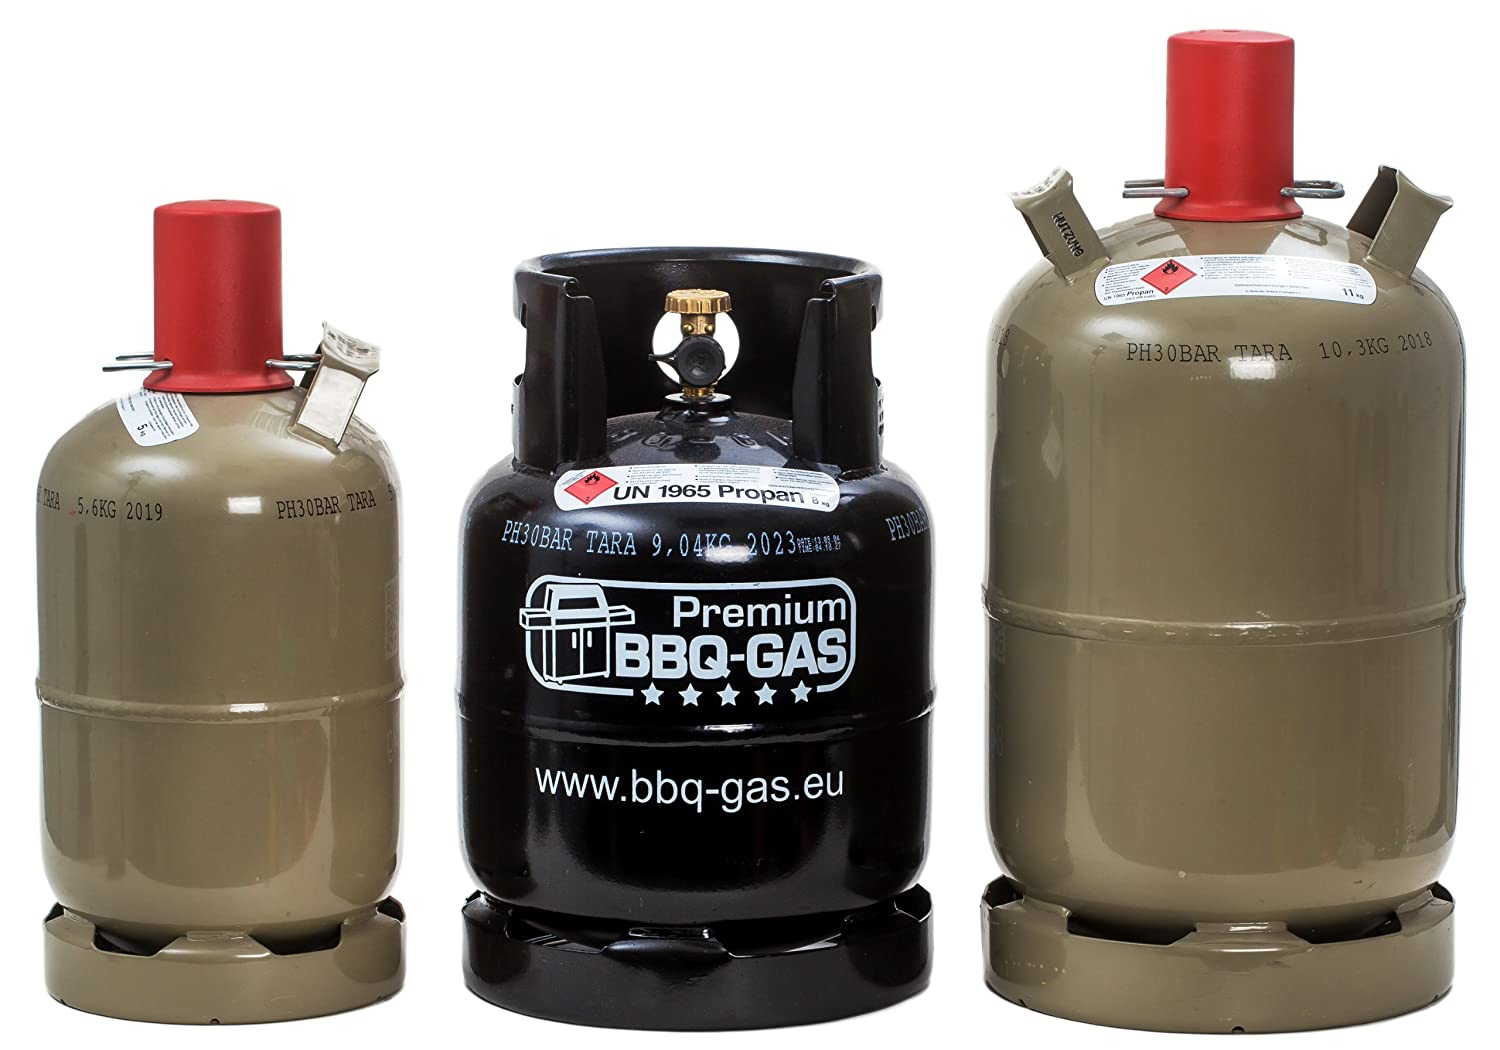 premium bbq gas gasflasche vorstellung tipp. Black Bedroom Furniture Sets. Home Design Ideas